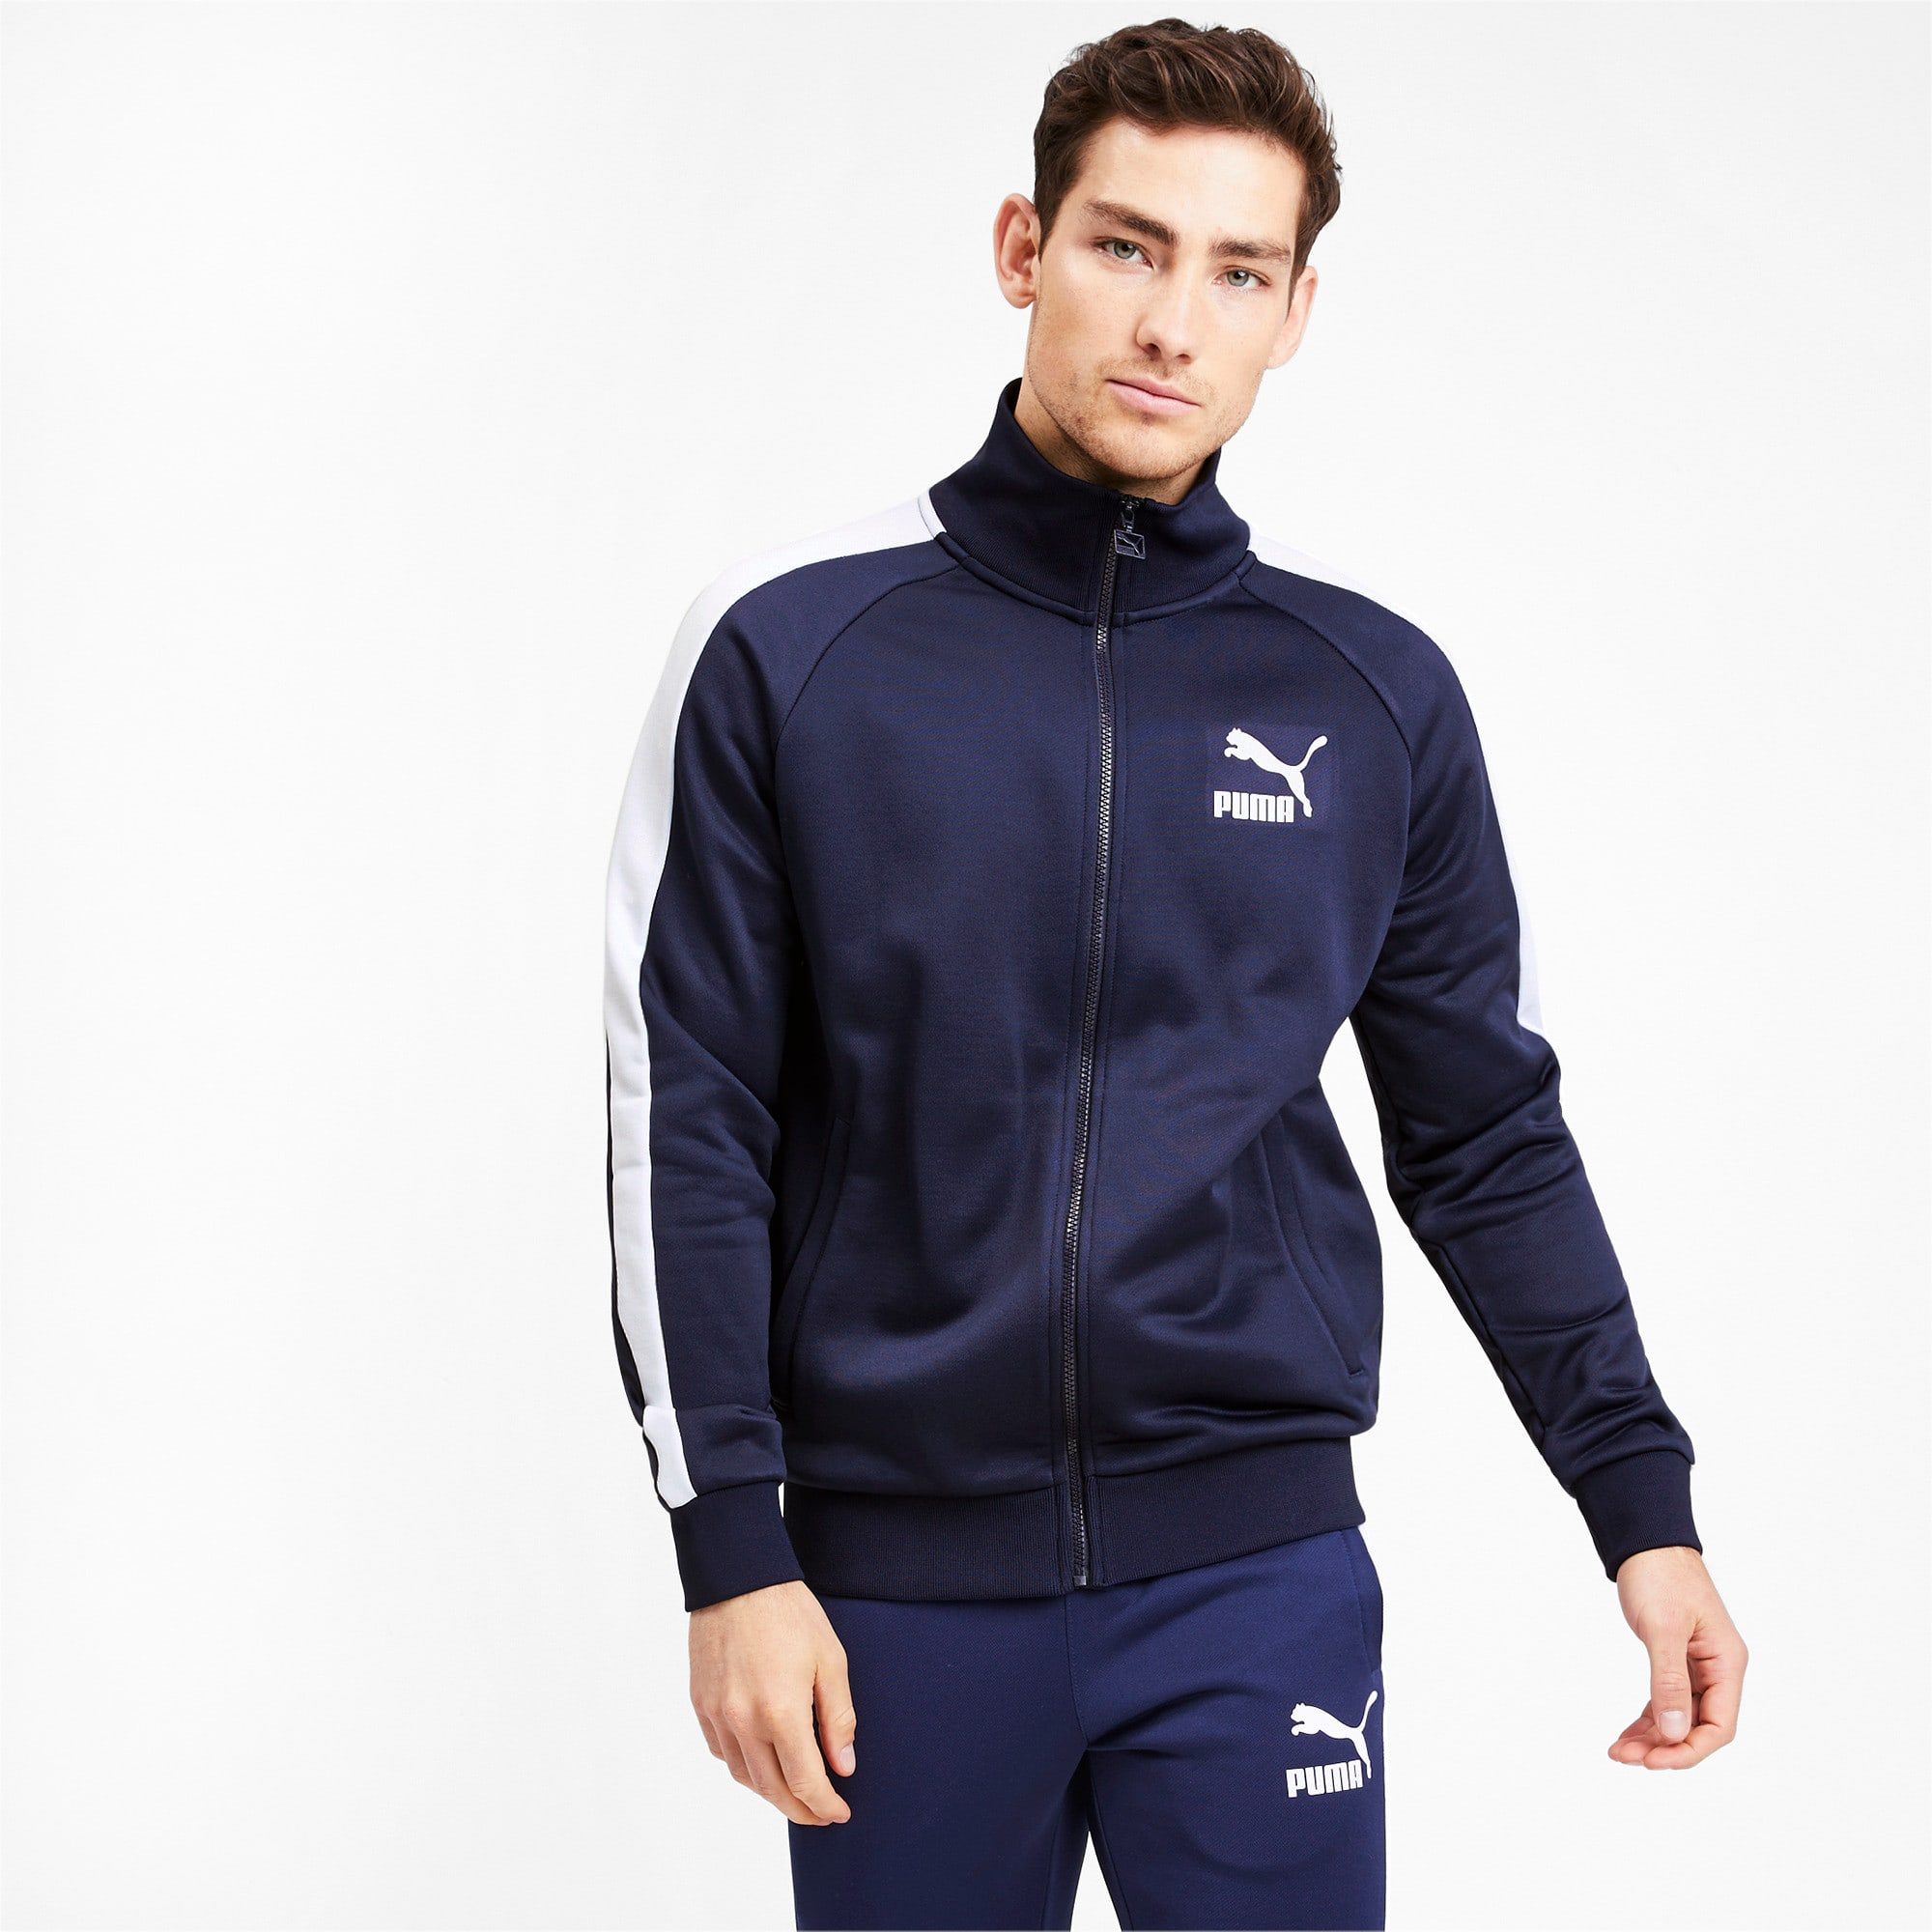 Thumbnail 2 of Iconic T7 Men's Track Jacket, Peacoat, medium